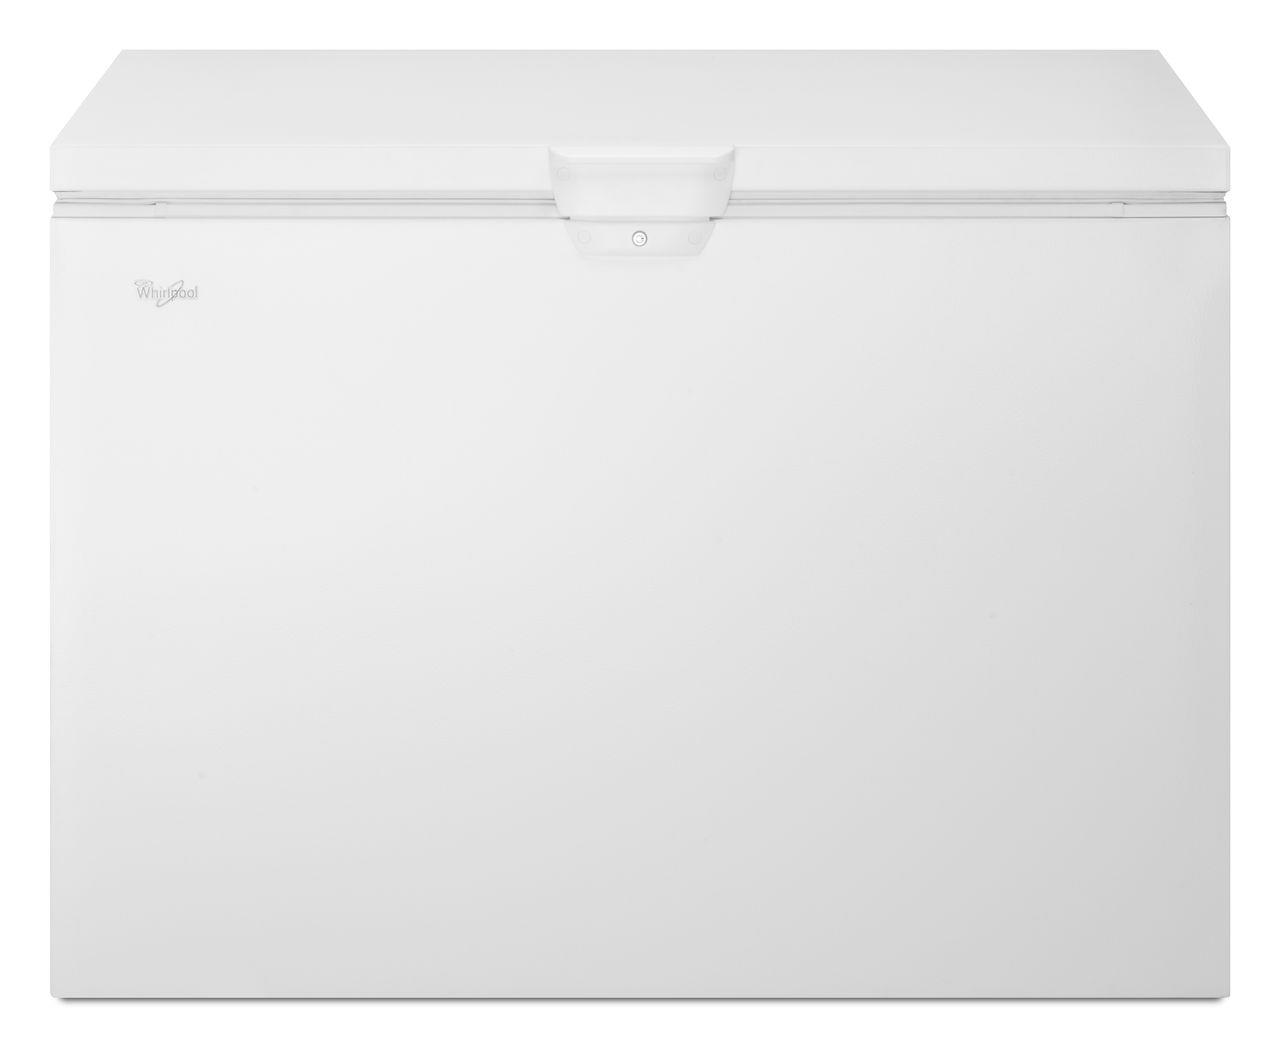 Whirlpool Freezer Chest 15 cu. ft. Chest Freezer - Item Number: WZC3115DW